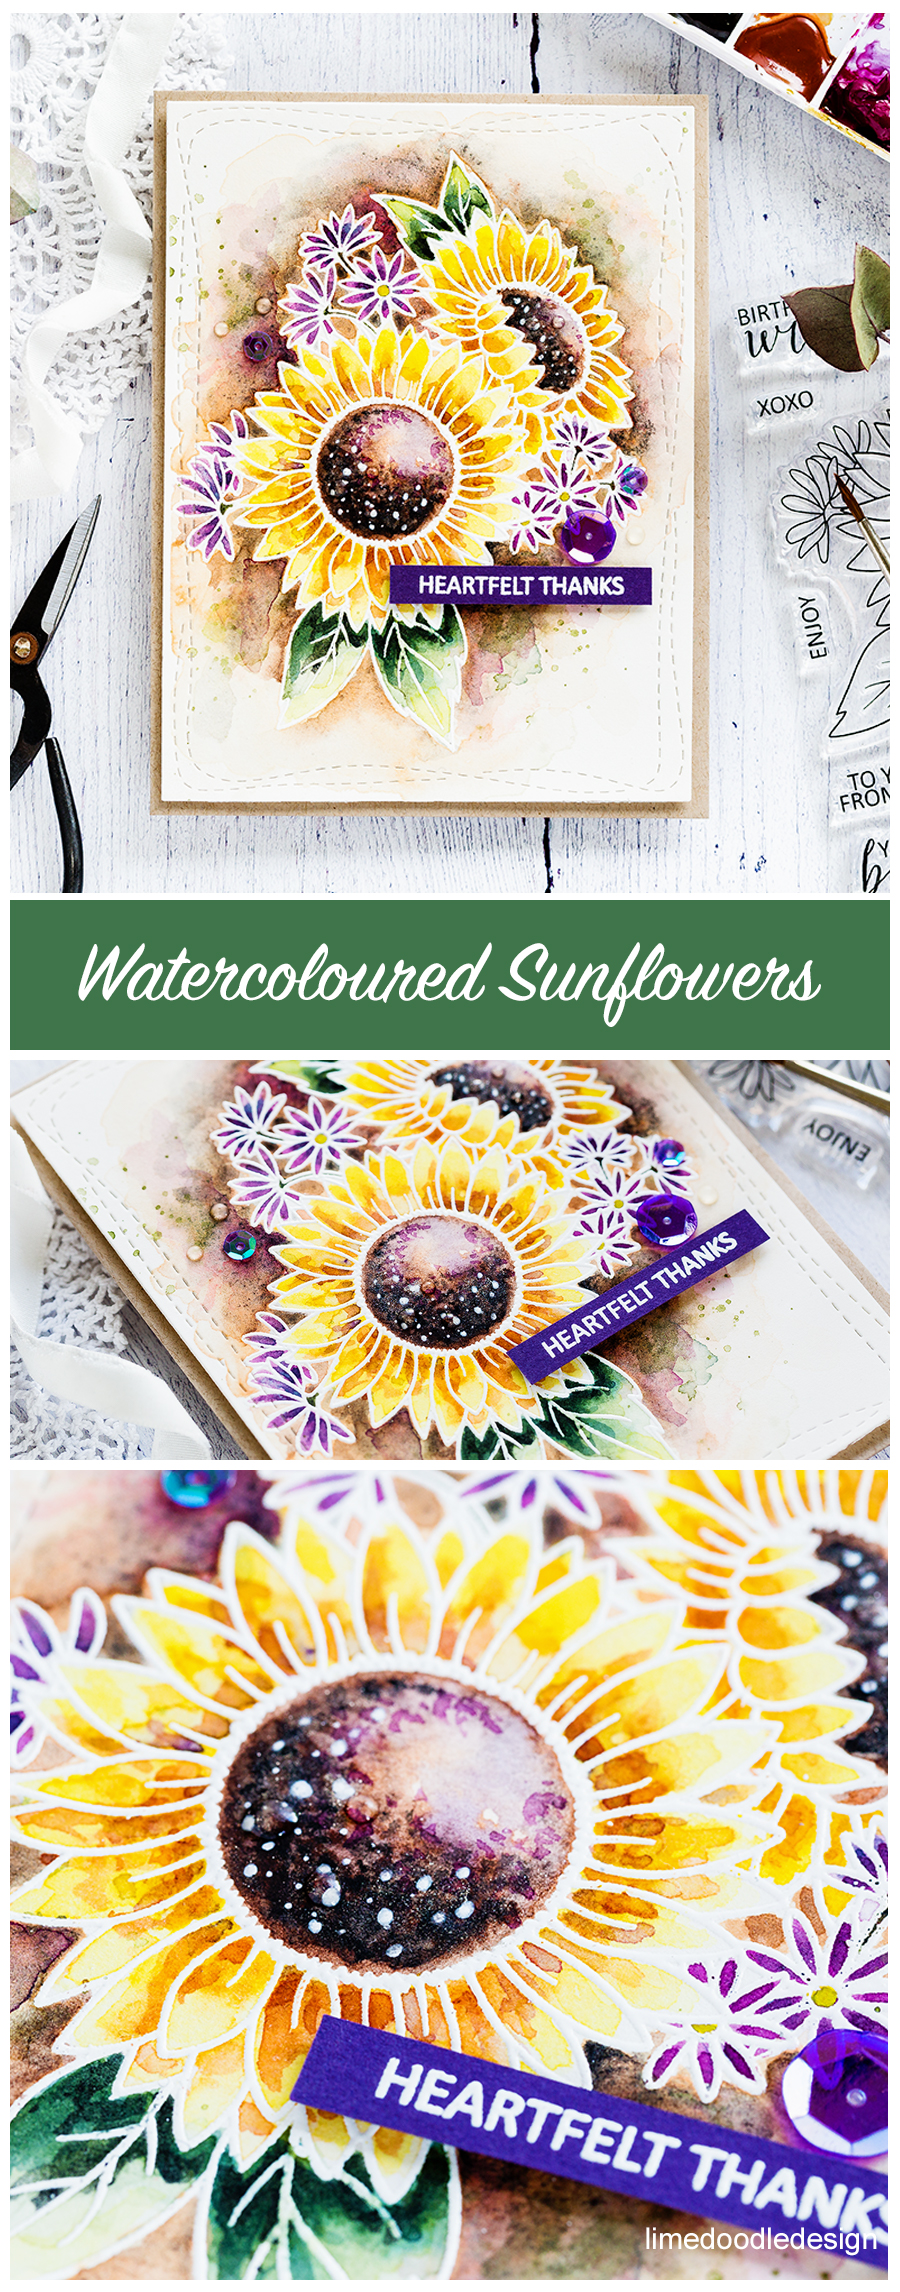 Watercoloured sunflowers handmade card by Debby Hughes for the 30 Day Coloring Challenge Blog Hop. Find out more here: https://limedoodledesign.com/2017/09/30-day-coloring-challenge-blog-hop-watercoloured-sunflowers-giveaway/